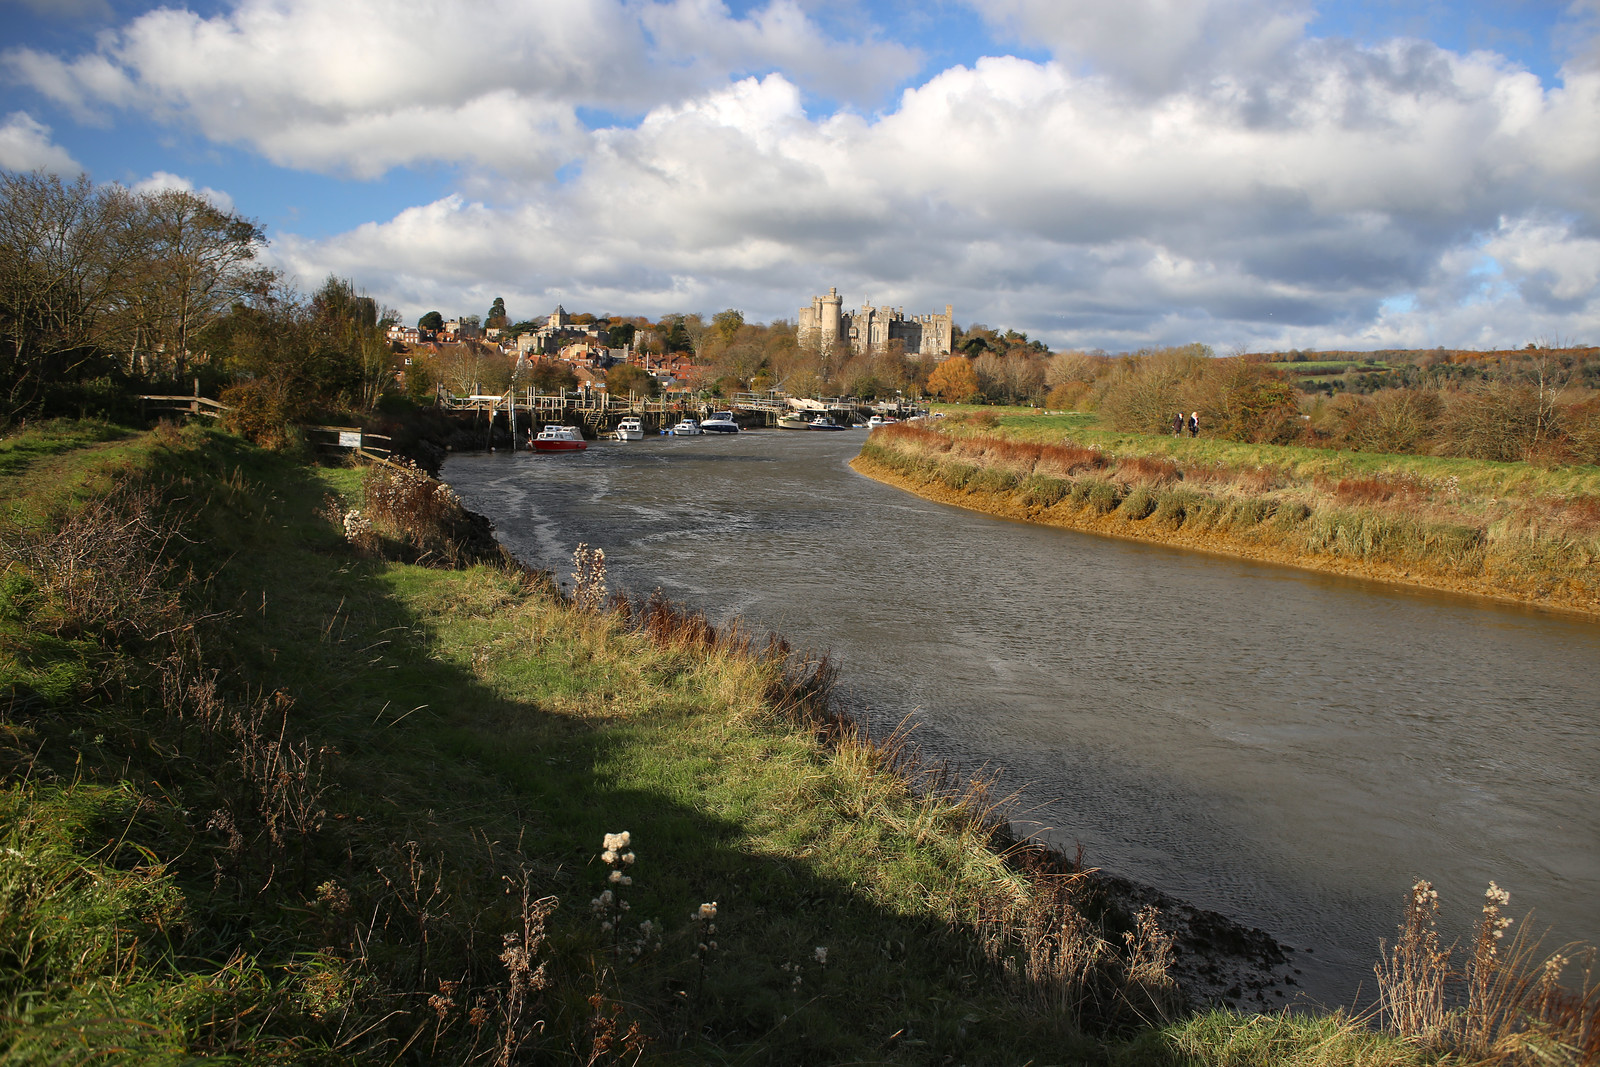 The River Arun, Arundel With Arundel castle visible ahead